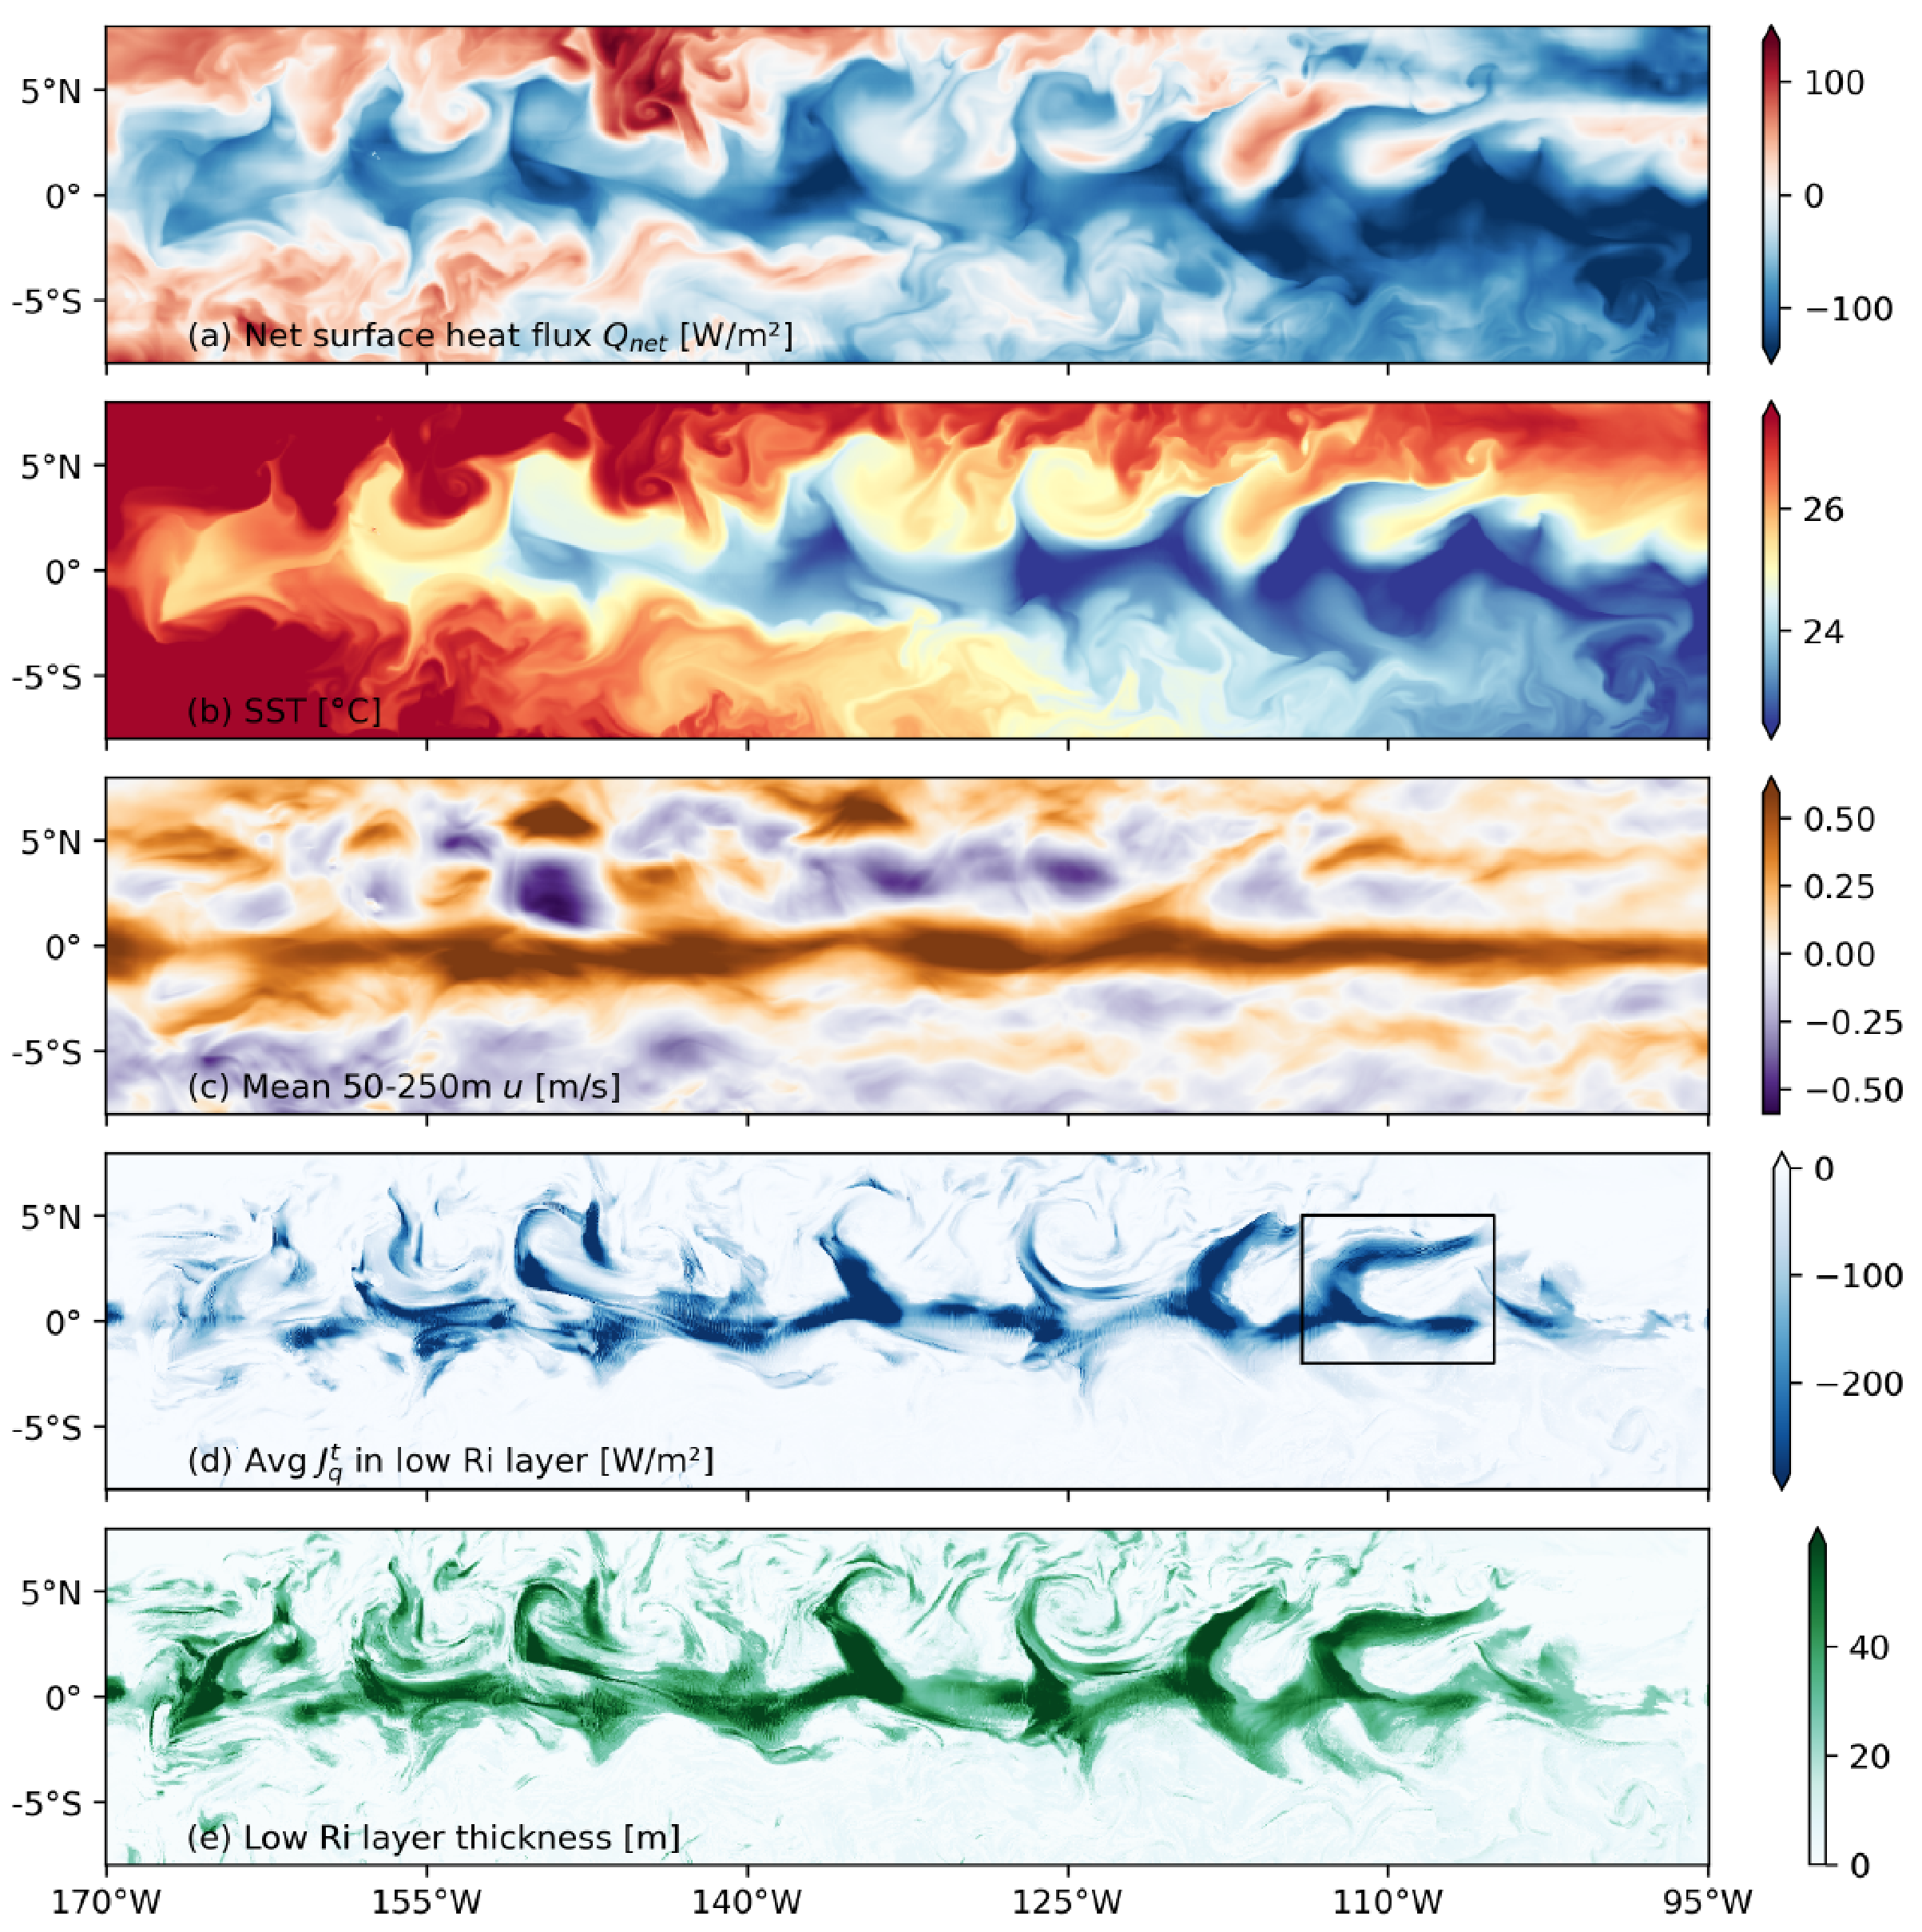 Daily averaged fields for 05 Dec 1995, as modelled in the MITgcm regional simulation of the ECT by Cherian et al. (2021). (a) Net surface heat flux Qnet (negative means heat enters the ocean). (b) SST. (c) Mean zonal velocity between 50- and 250-m. (d) Integrated turbulent heat flux in the low Ri layer (zRi < z < zMLD) normalized by a depth of 50m (e) Thickness of the low Ri layer (where gradient Richardson number is low, below the MLD). The black rectangle in (d) marks the TIW that is studied in detail in Cherian et al.